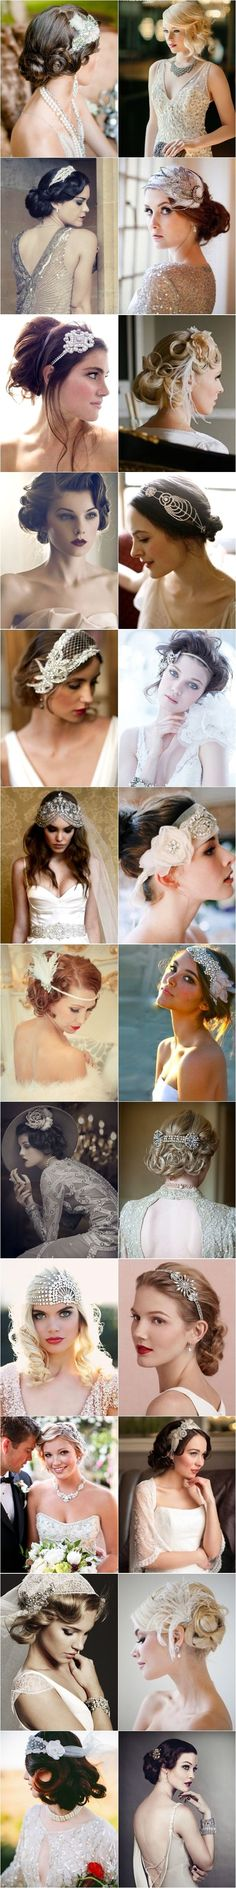 """Wedding Philippines - Gatsby Glam Inspired Hairstyles"" Tons of ideas for our hair for your future Gatsby-themed wedding! Lol Wedding Philippines - Gatsby Glam Inspired Hairstyles Tons of ideas for our hair for your future Gatsby-themed wedding! Gatsby Wedding, Glamorous Wedding, Wedding Updo, Wedding Vintage, Trendy Wedding, Perfect Wedding, Wedding Posing, Wedding Ideas, Boho Wedding"